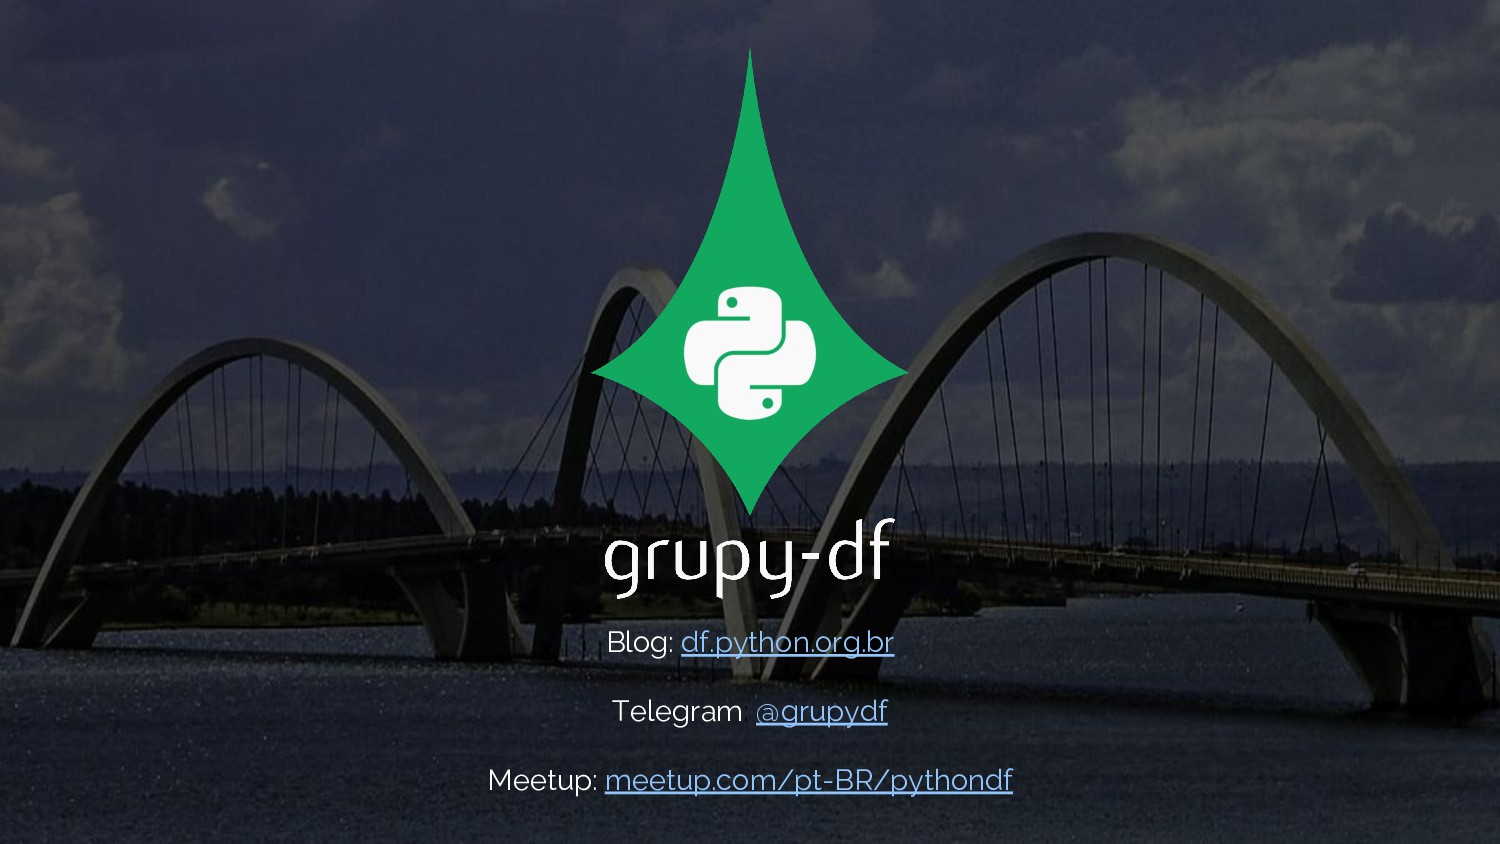 Blog: df.python.org.br Telegram: @grupydf Meetu...